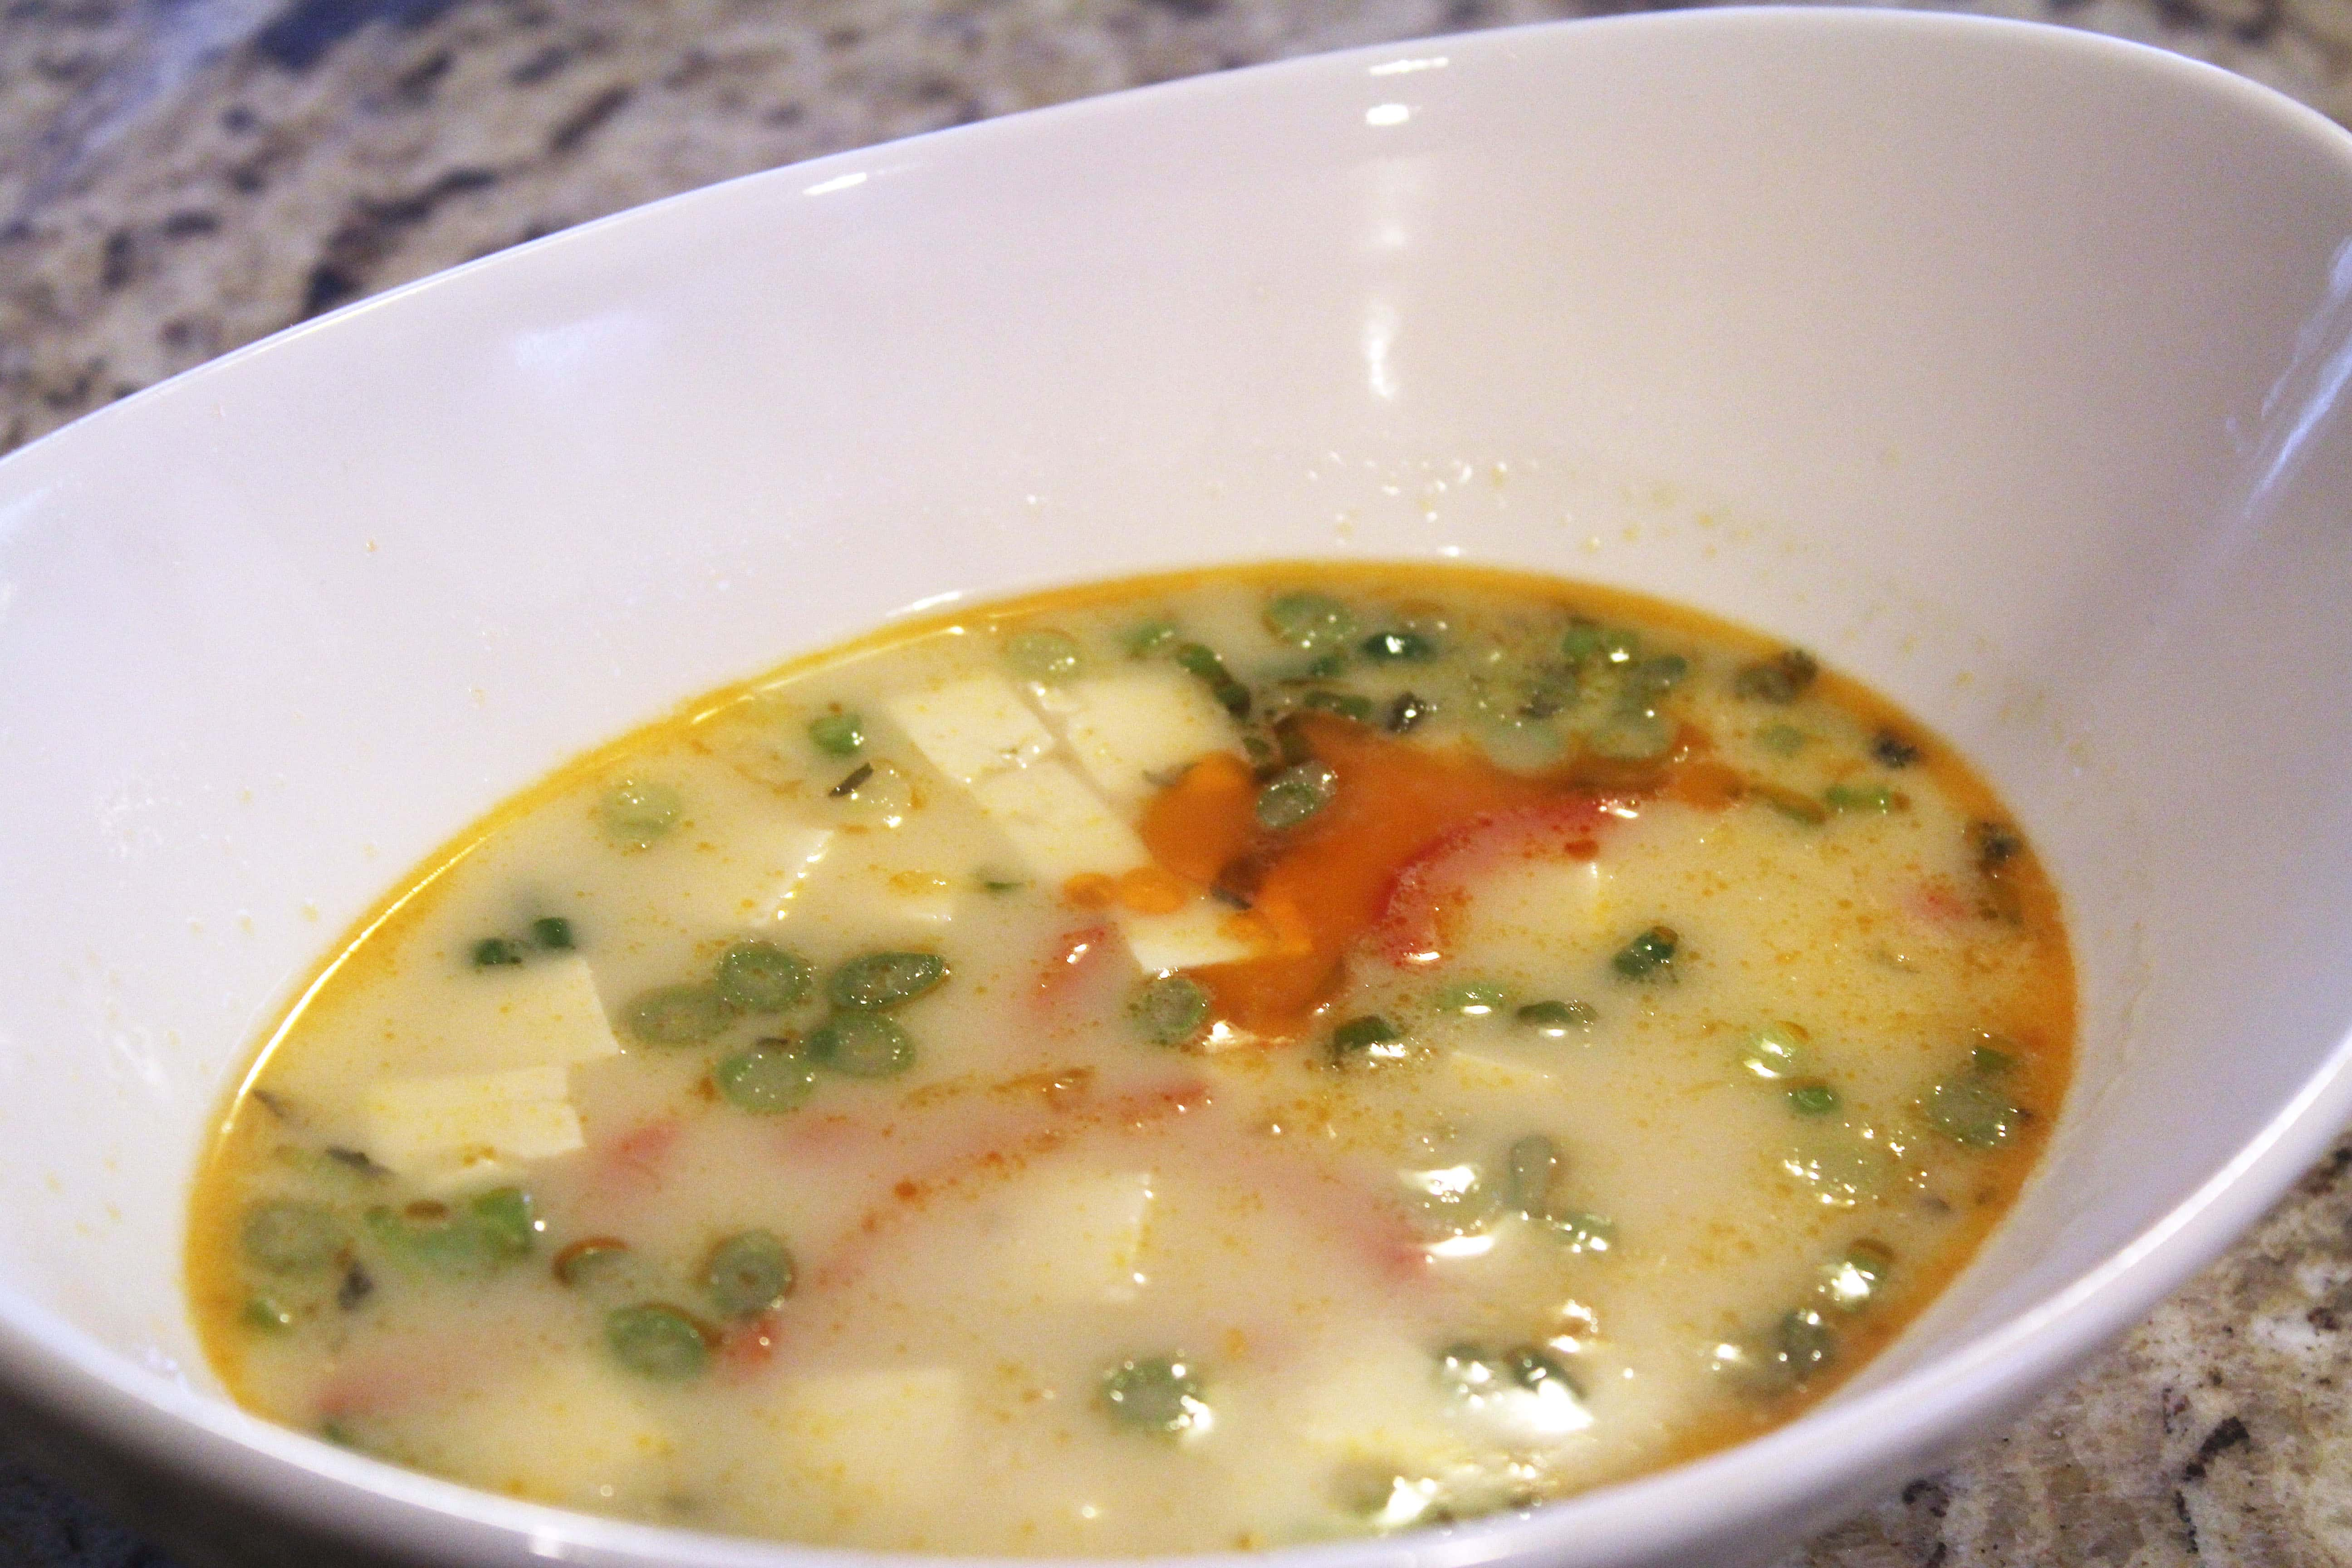 Soup topped with oil